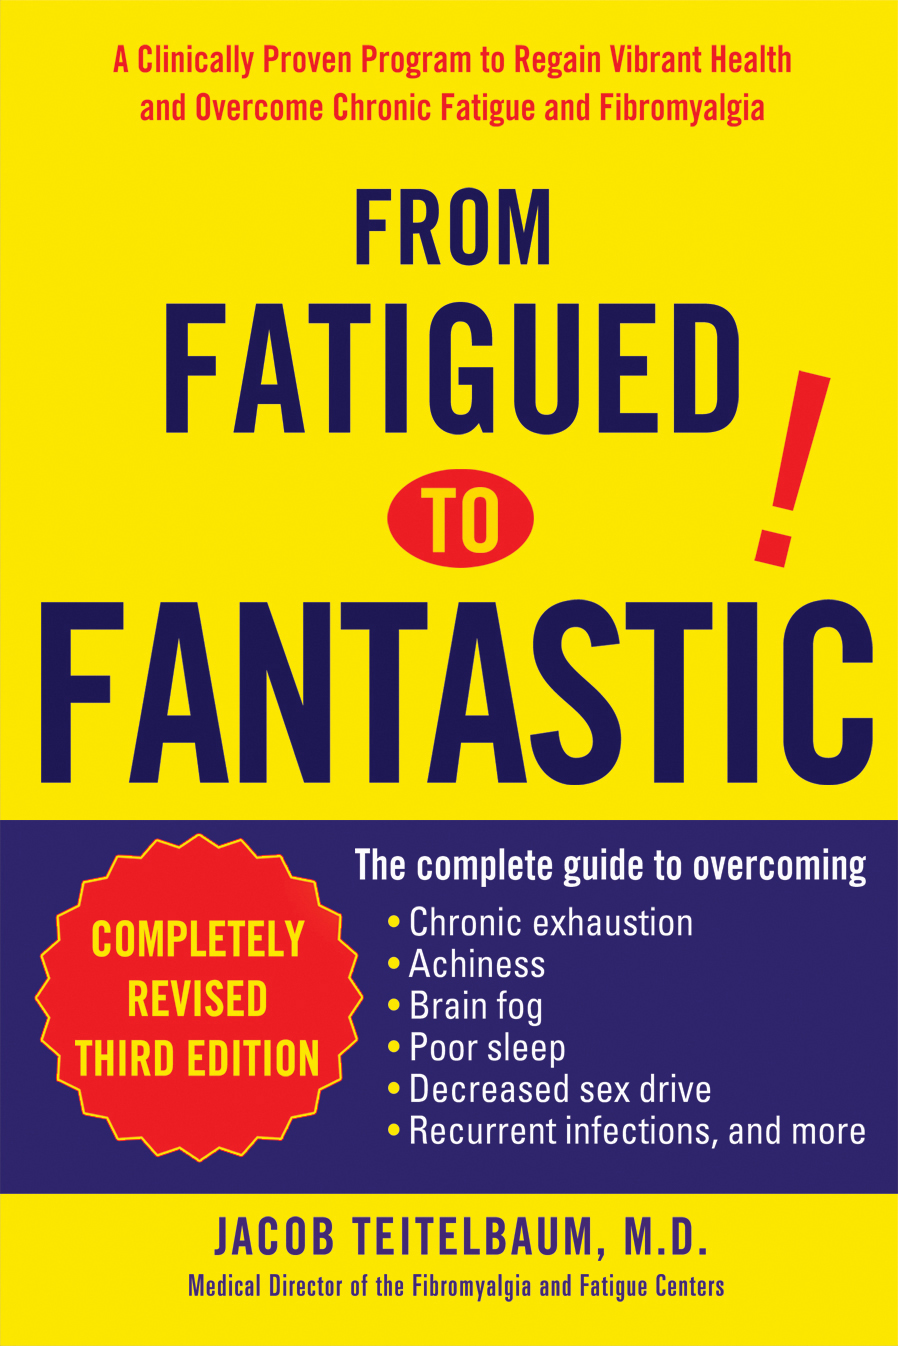 From Fatigued to Fantastic: A Clinically Proven Program to Regain Vibrant Health and Overcome Chronic Fatigue and Fibromyalgia New, revised third edition By: Jacob Teitelbaum